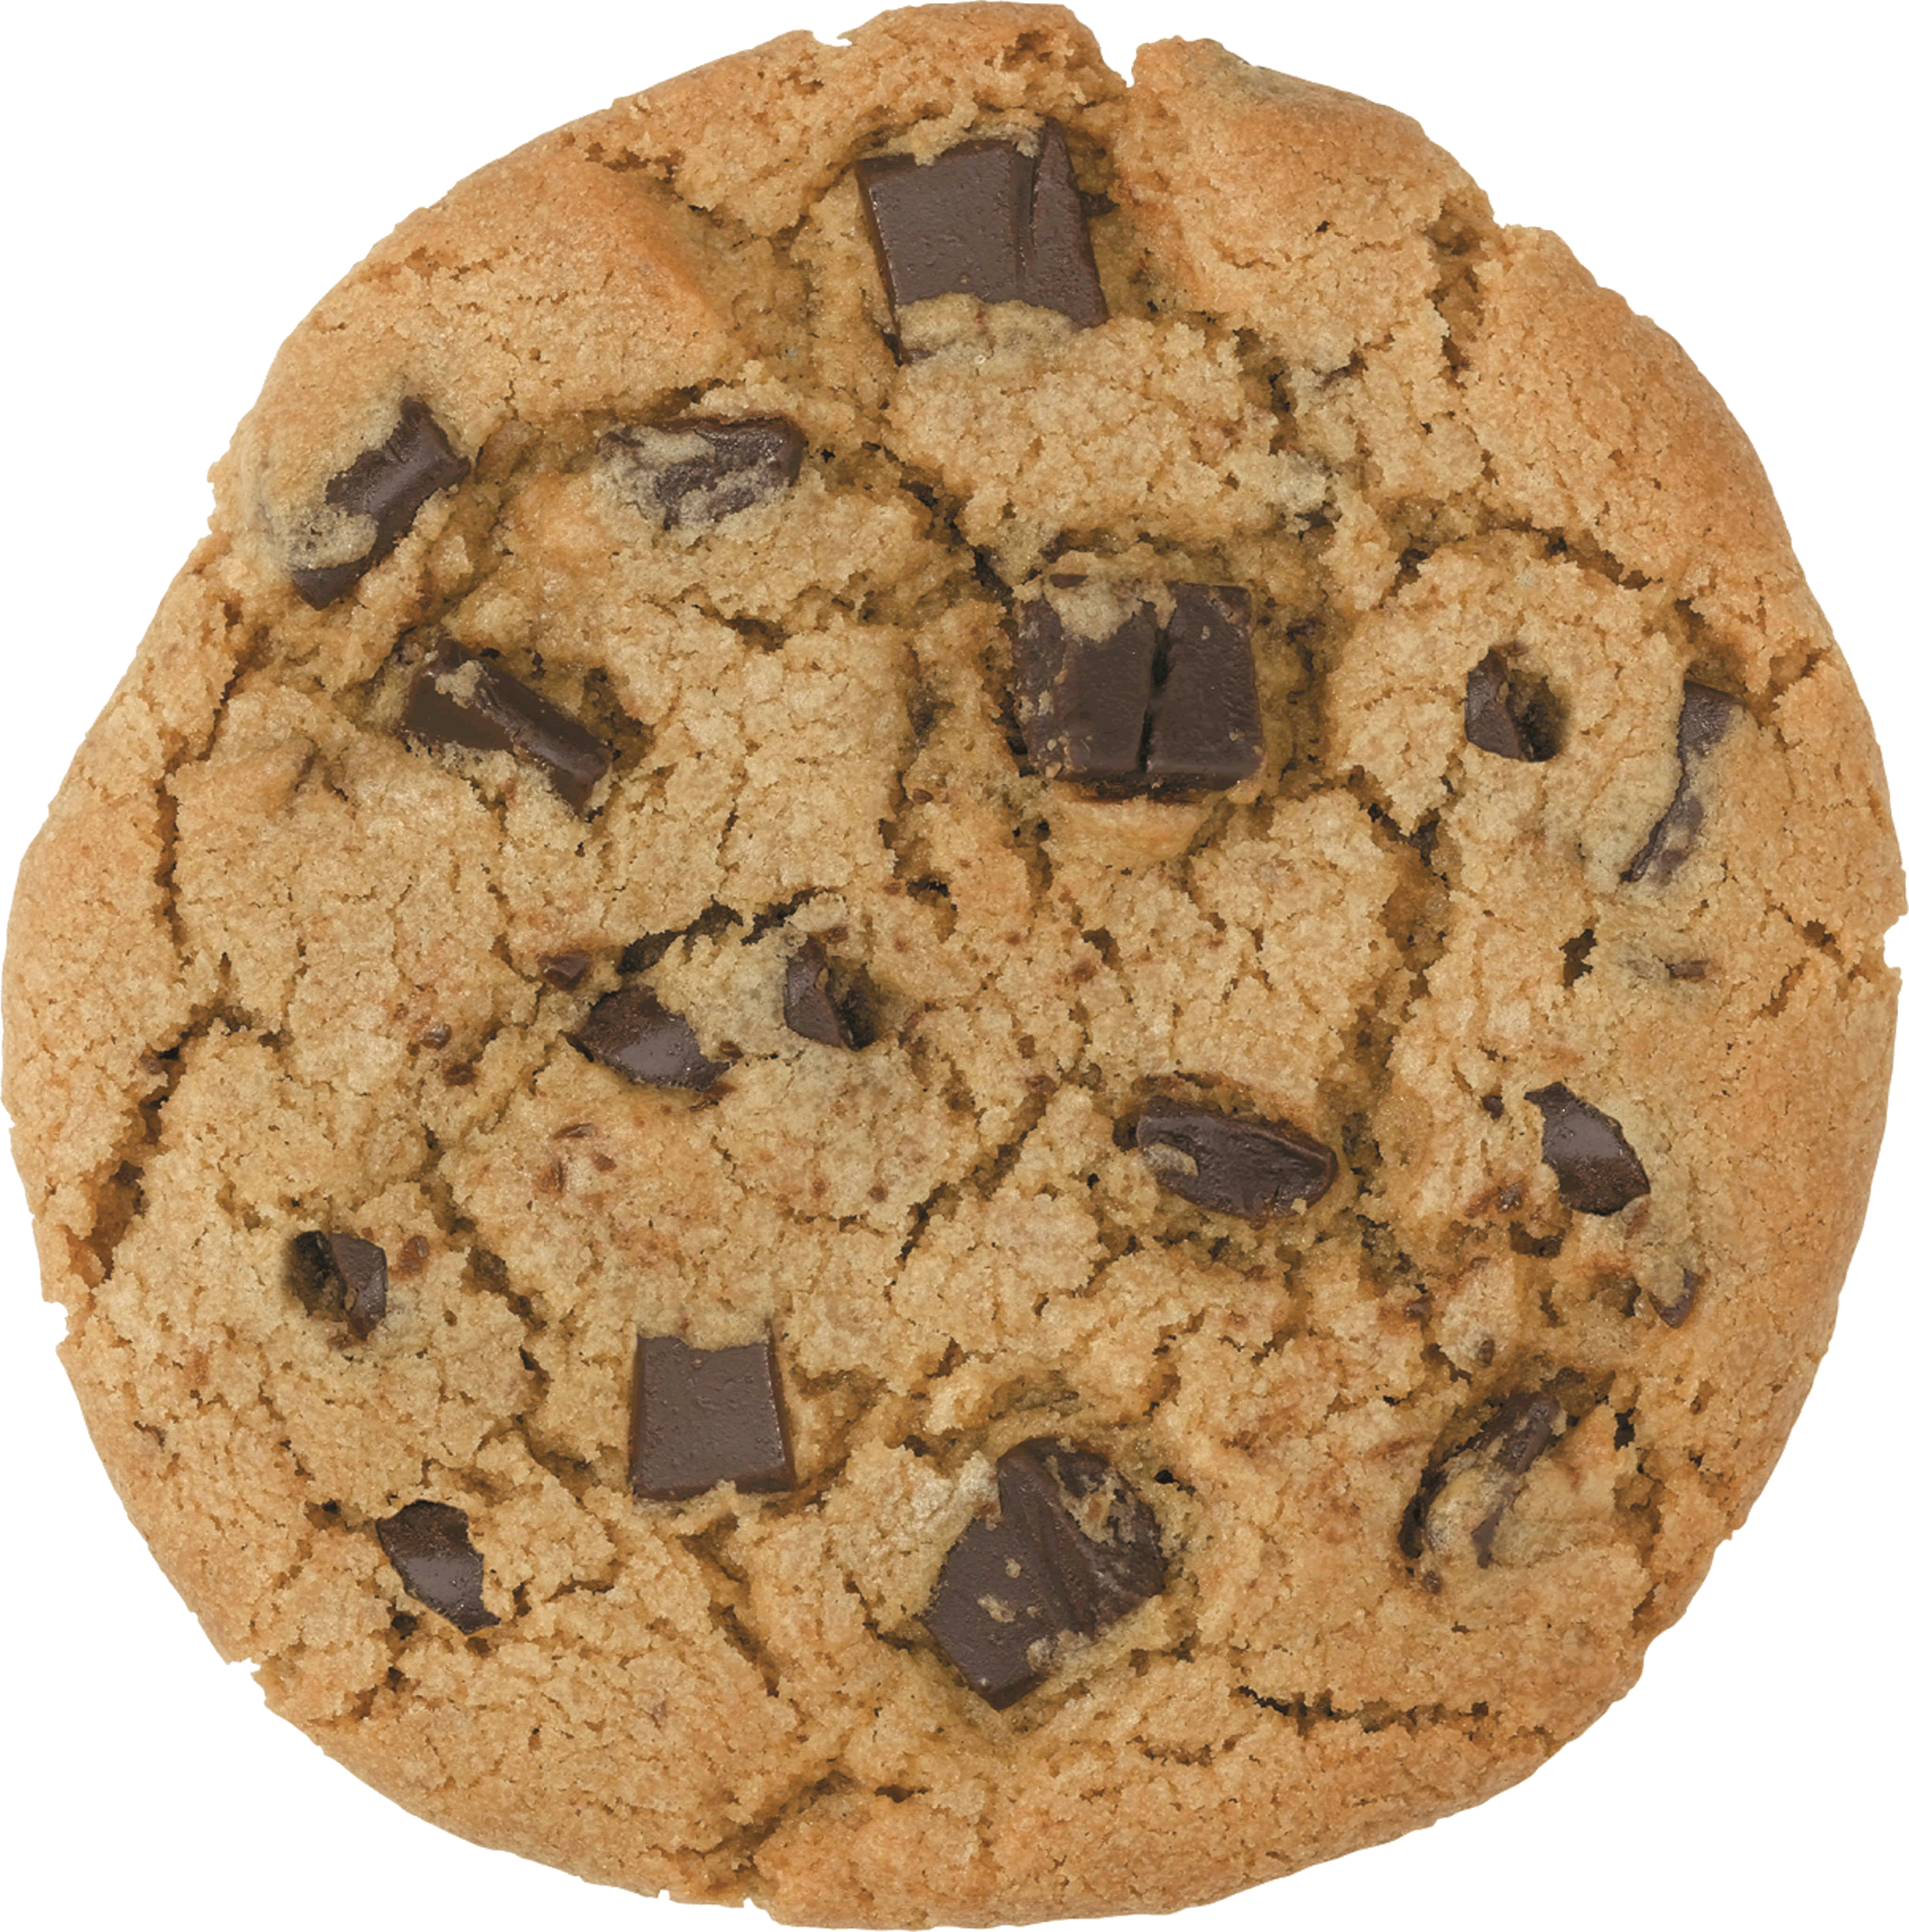 Fresh Cookie Transparent Photo image #47930